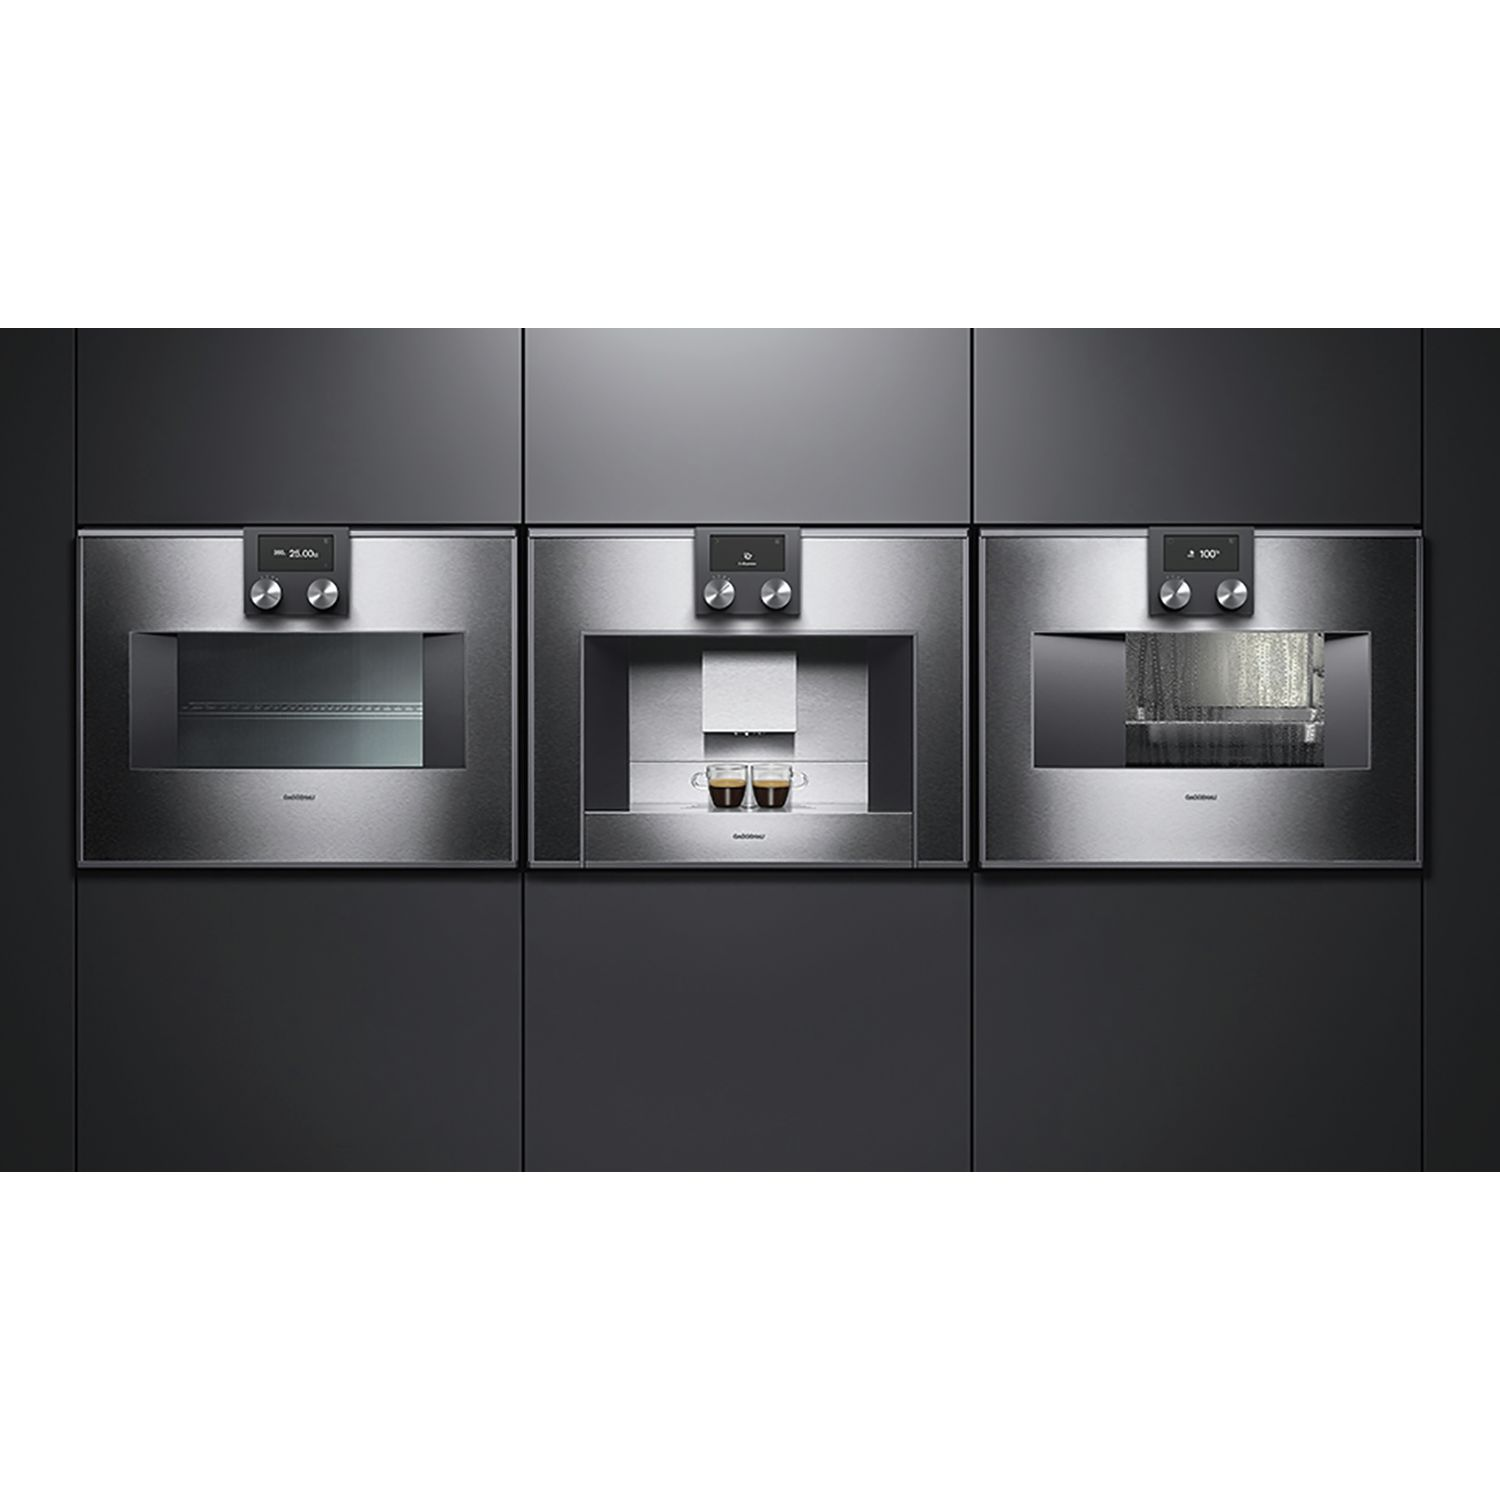 gaggenau dampfbackofen bs471111 edelstahl bedienung oben. Black Bedroom Furniture Sets. Home Design Ideas